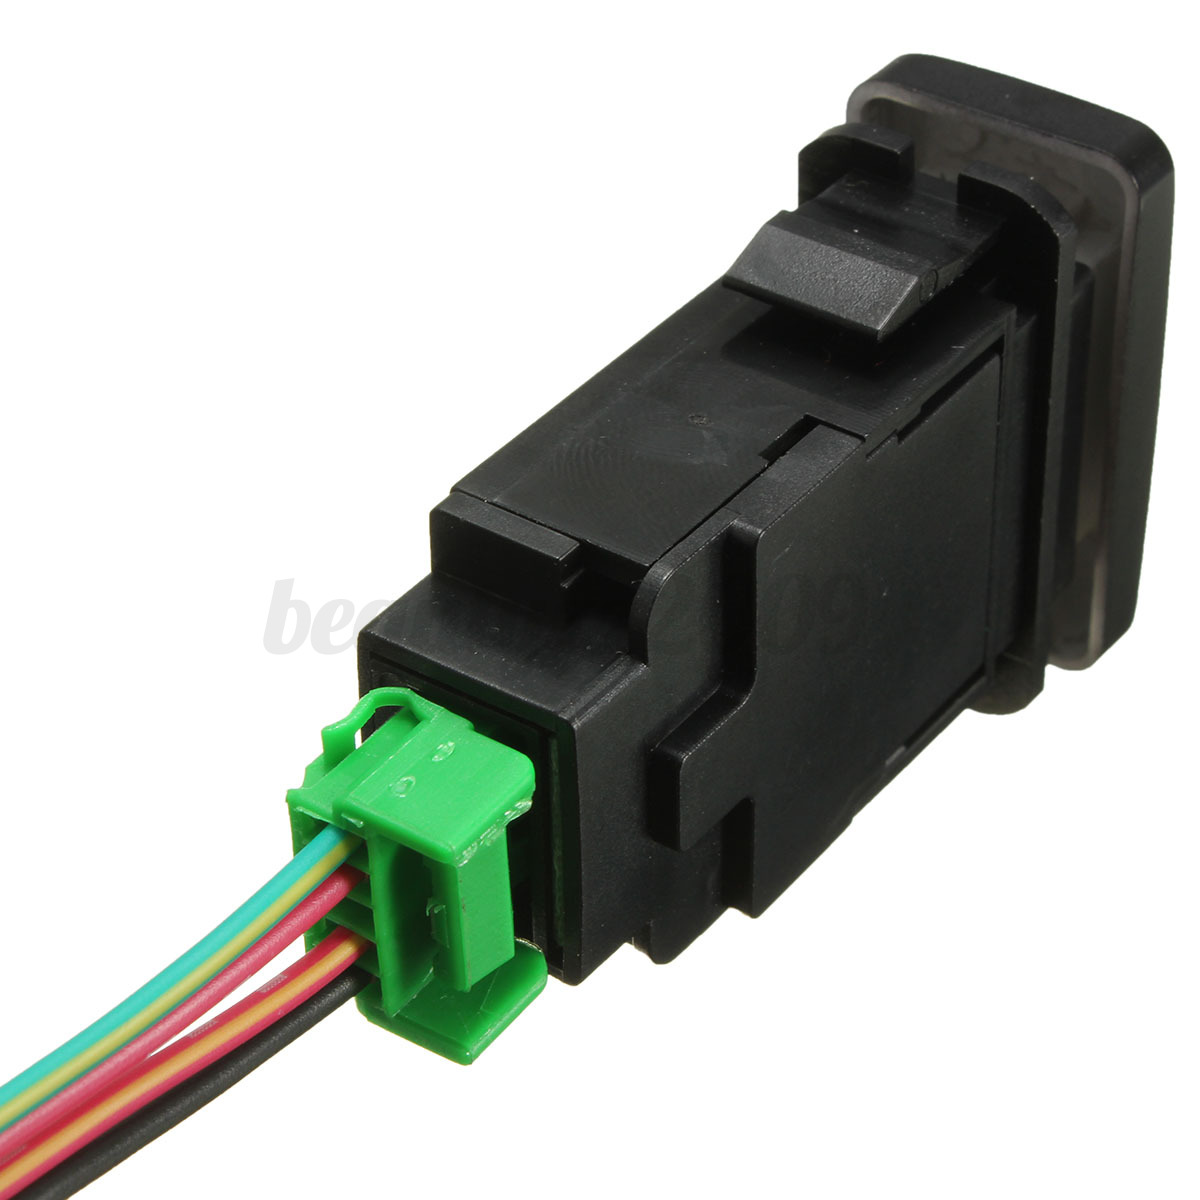 fj cruiser subwoofer wiring harness wiring diagram related posts to fj cruiser subwoofer wiring harness